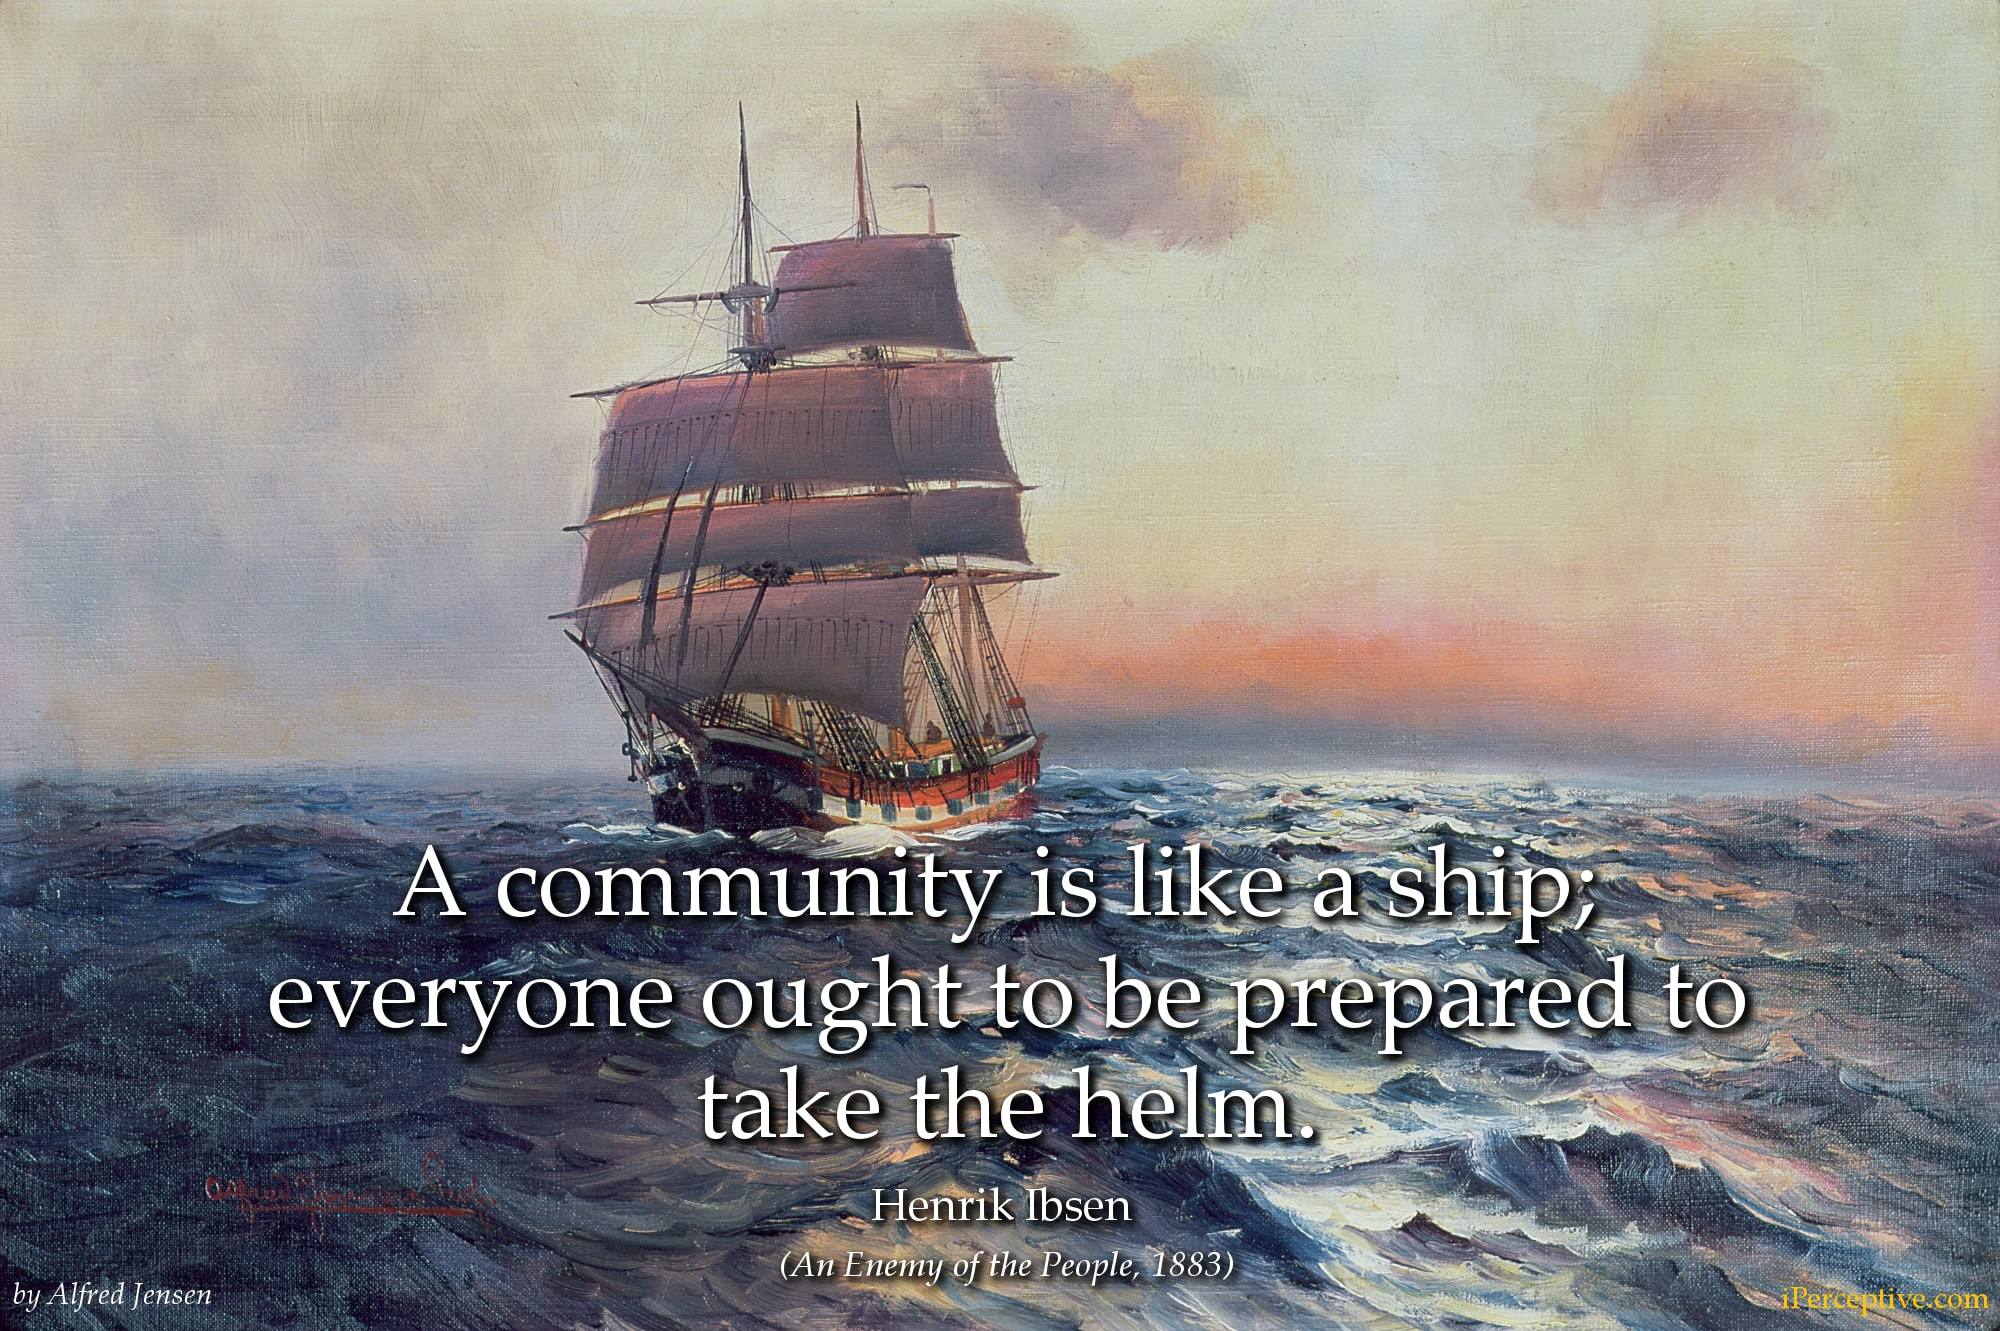 Henrik Ibsen Quote: A community is like a ship; everyone ought to be ...